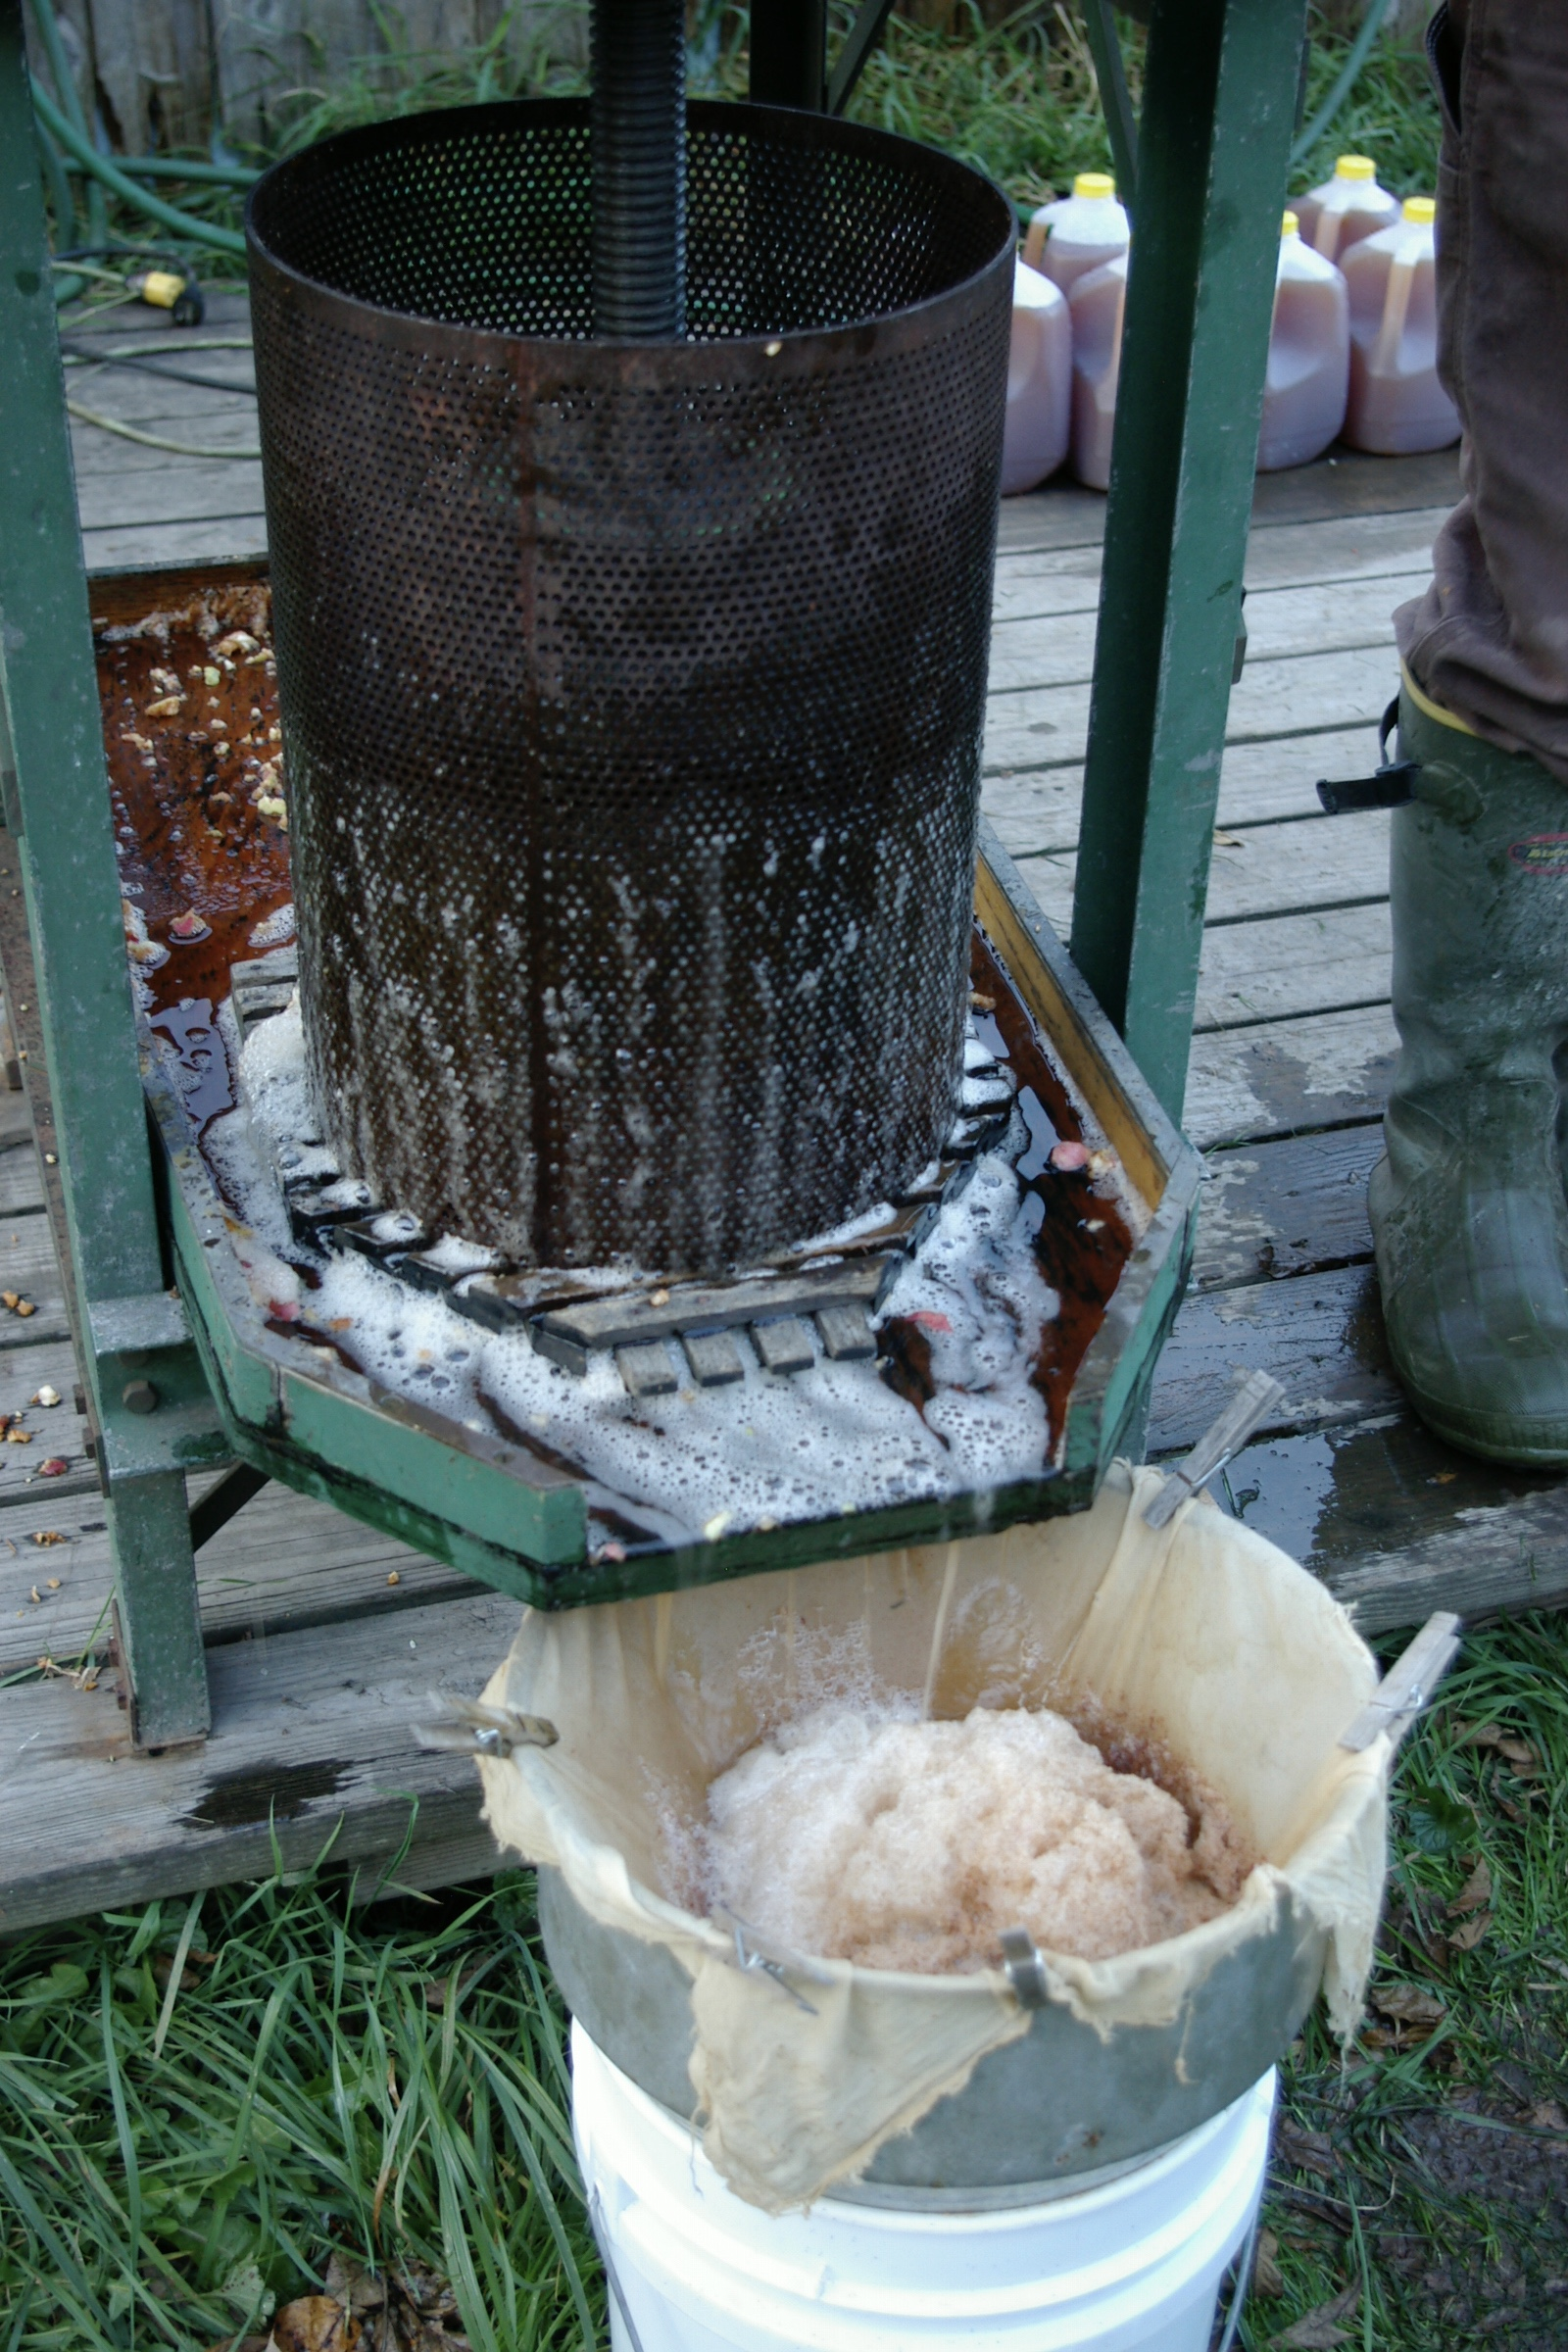 The ground apples being pressed into cider